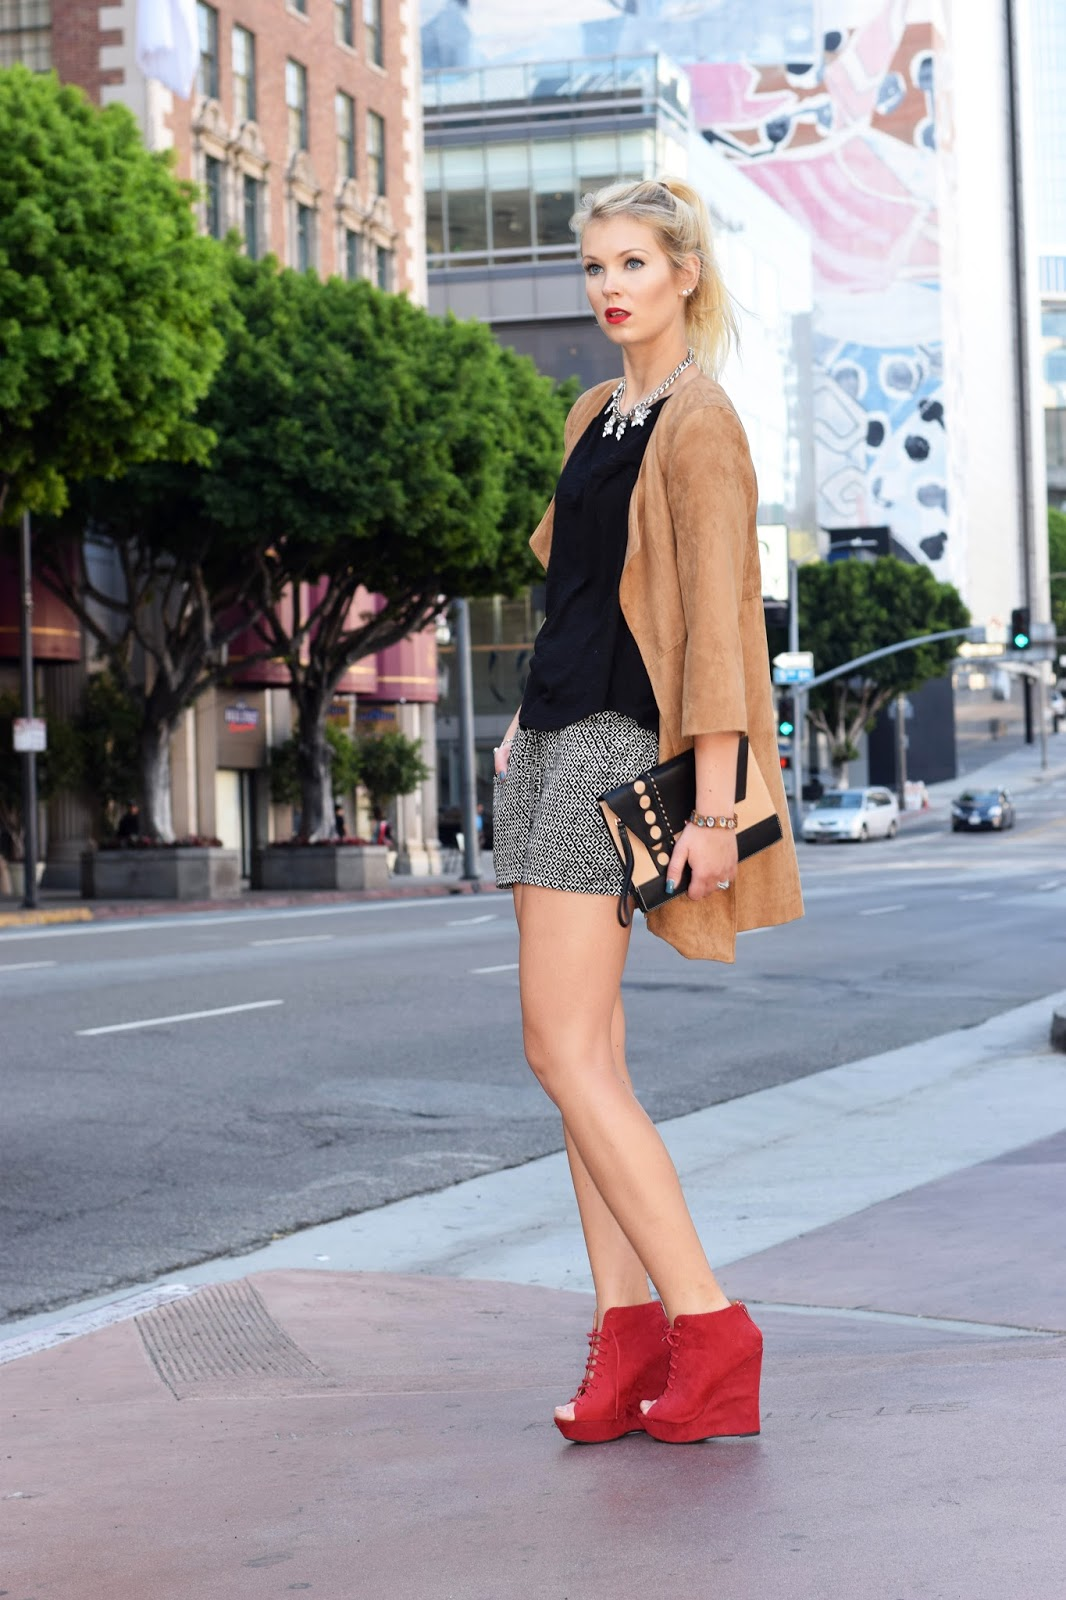 bebop clothes, bebop clothing, red heels, shorts, loose shorts, how to wear loose fitted pants, red lipstick, suede jacket